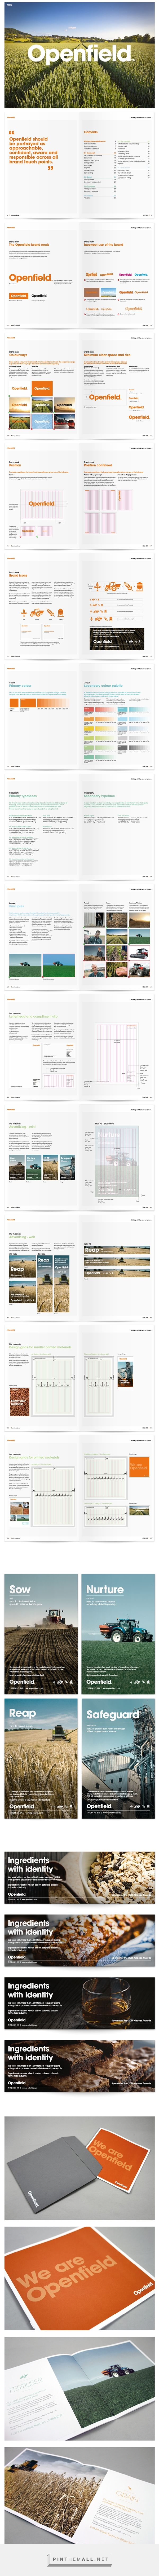 Openfield - Brand development and guidelineshttp://www.tomovens.com/371531/5543445/portfolio/openfield-brand-development-and-guidelines